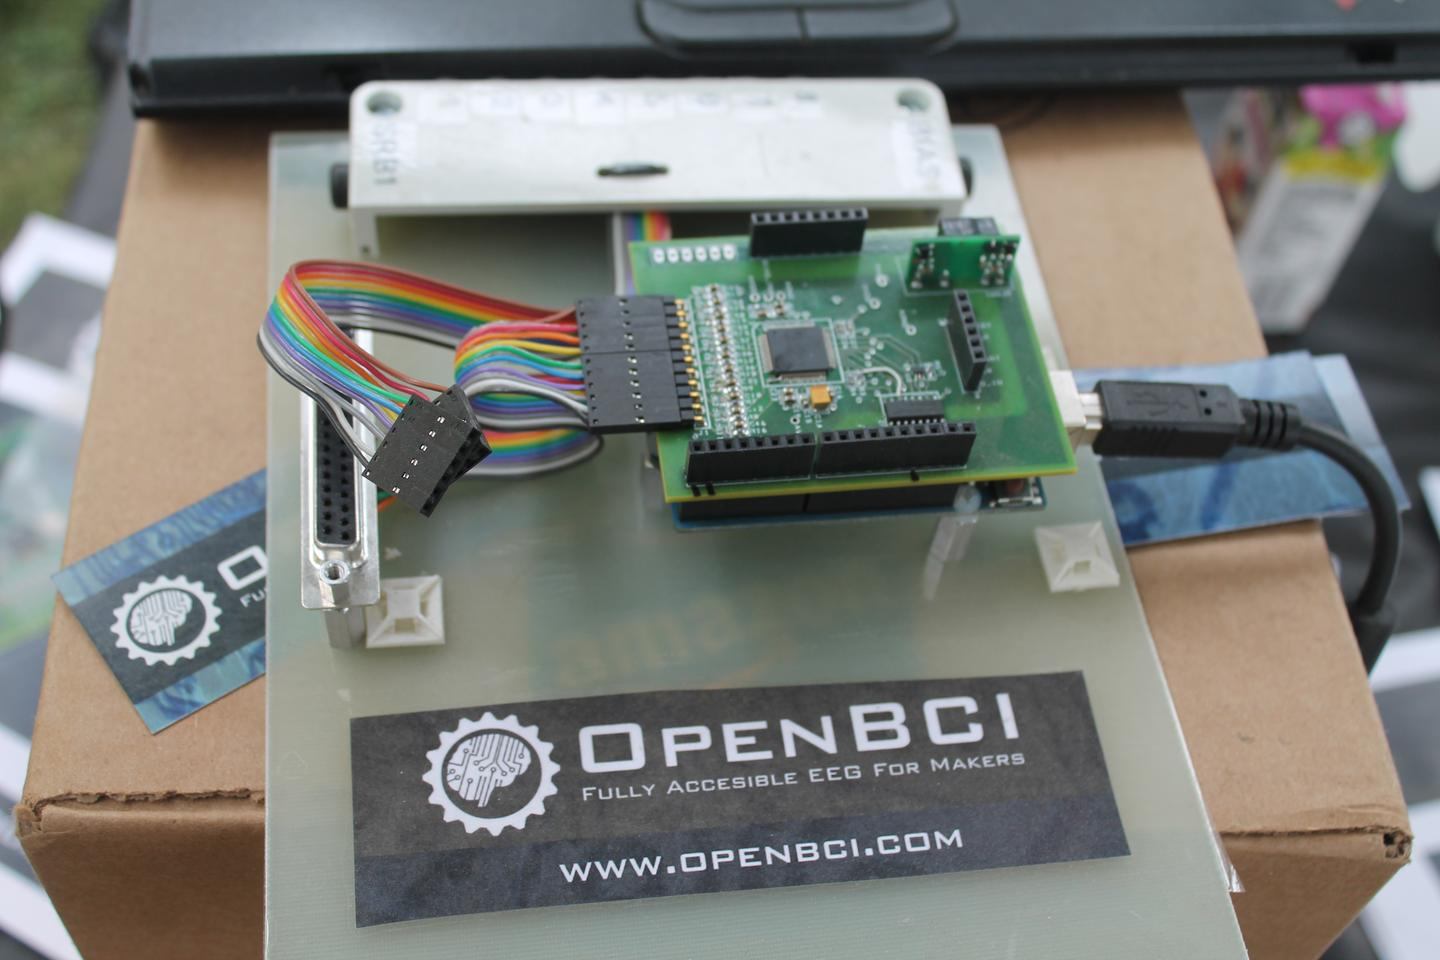 Prototype of the OpenBCI board at World Maker Faire, where it earned the Educator's Choice Award